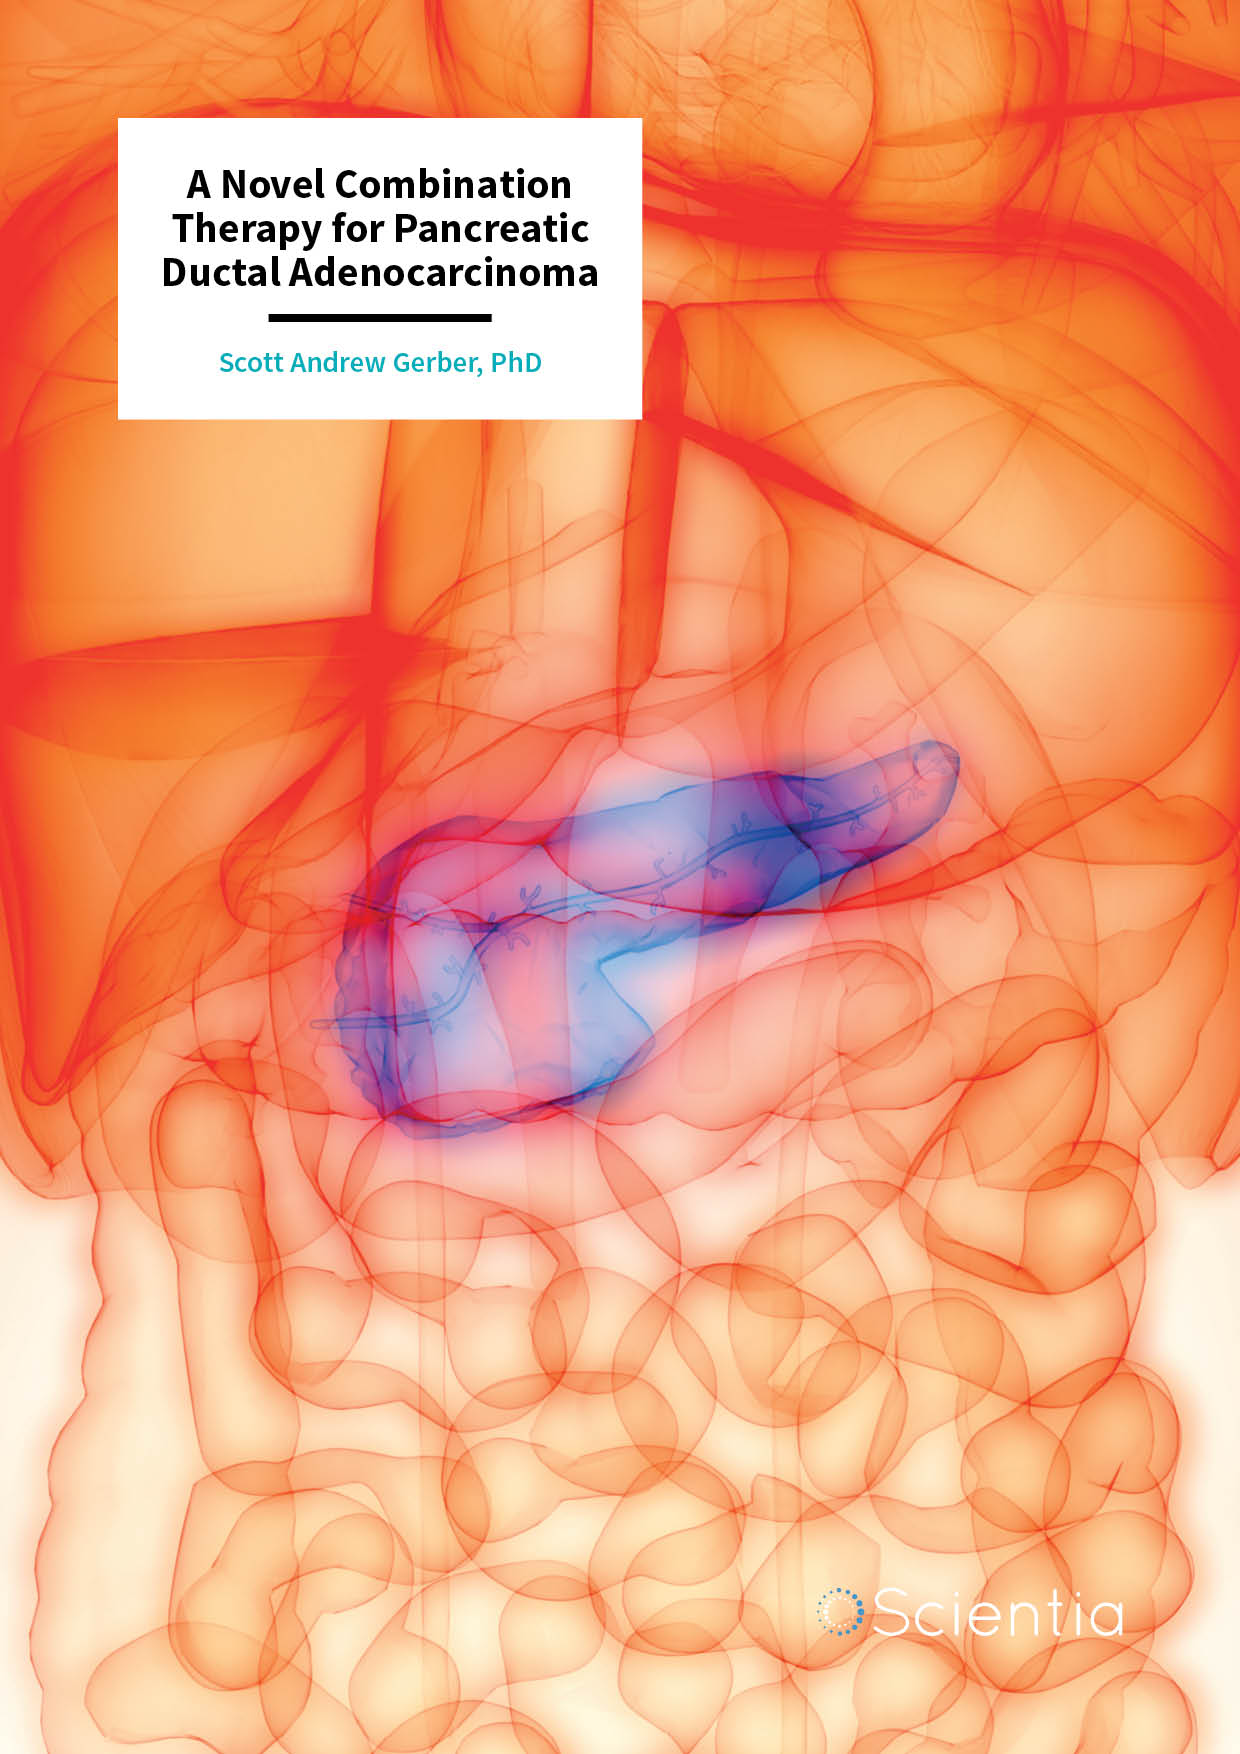 Dr Scott Gerber – A Novel Combination Therapy for Pancreatic Ductal Adenocarcinoma